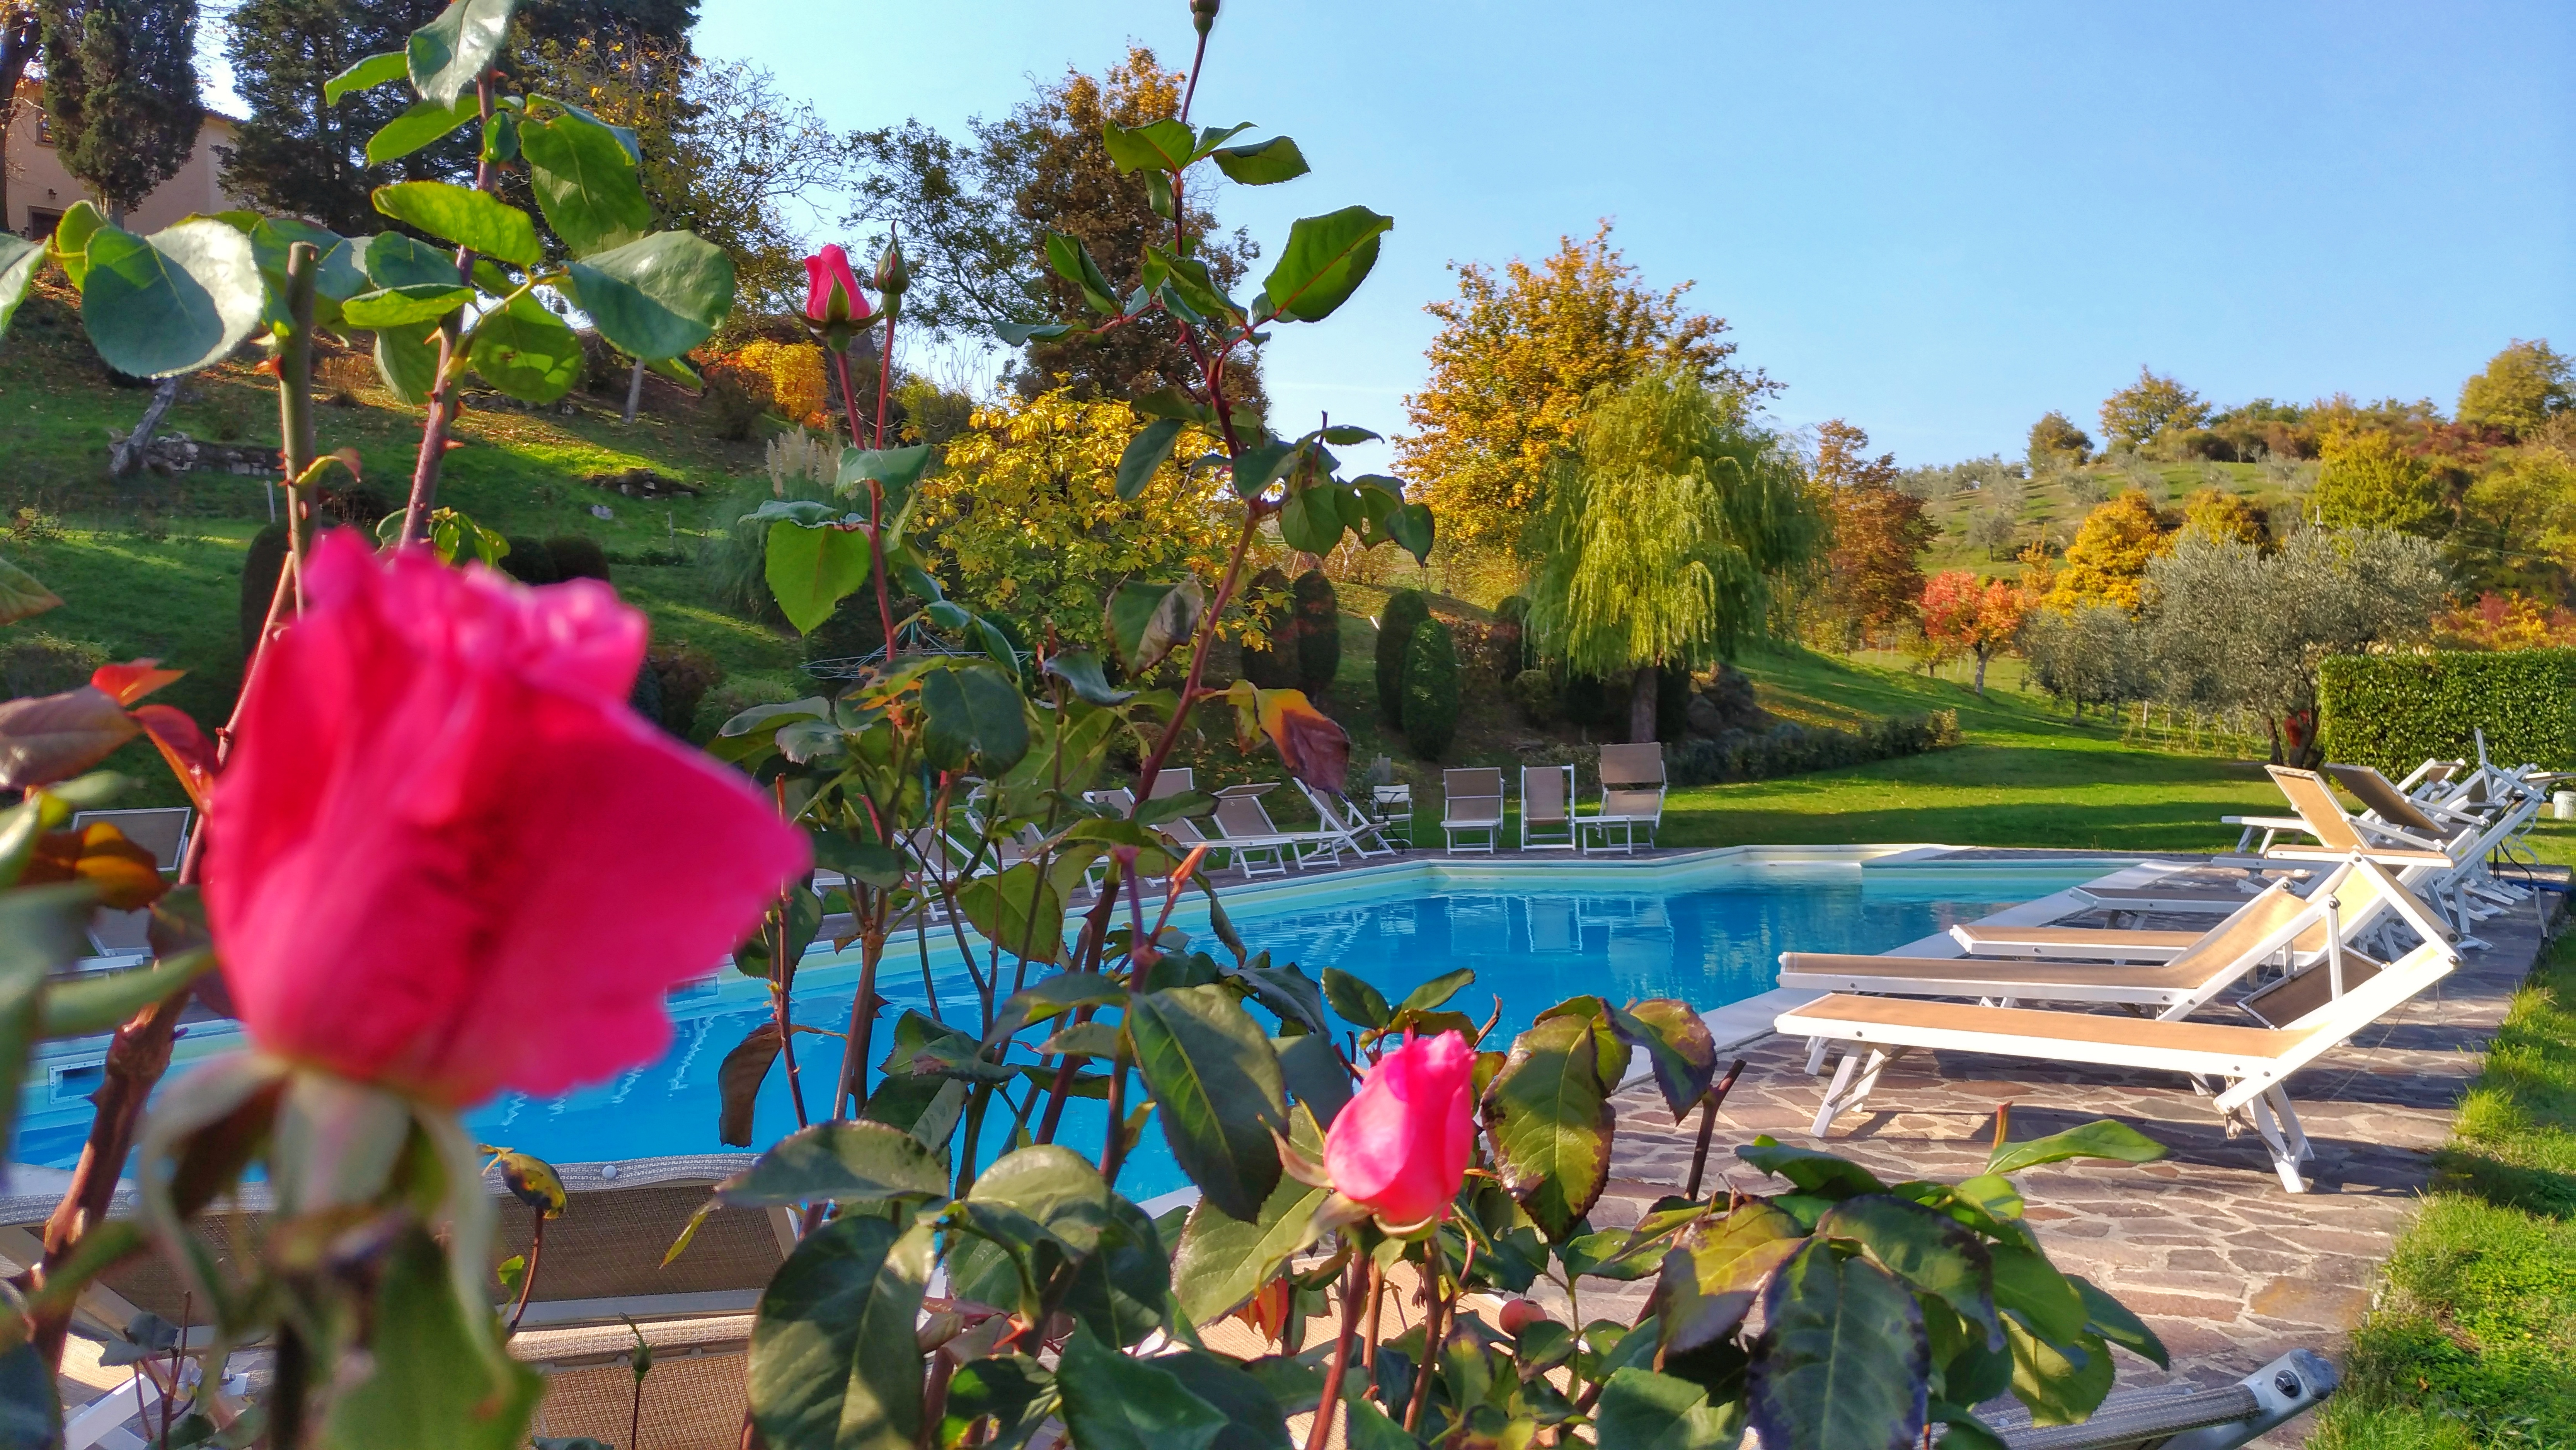 Luxury resort in Tuscany for connoisseurs of Villa Campestri Olive Oil Resort